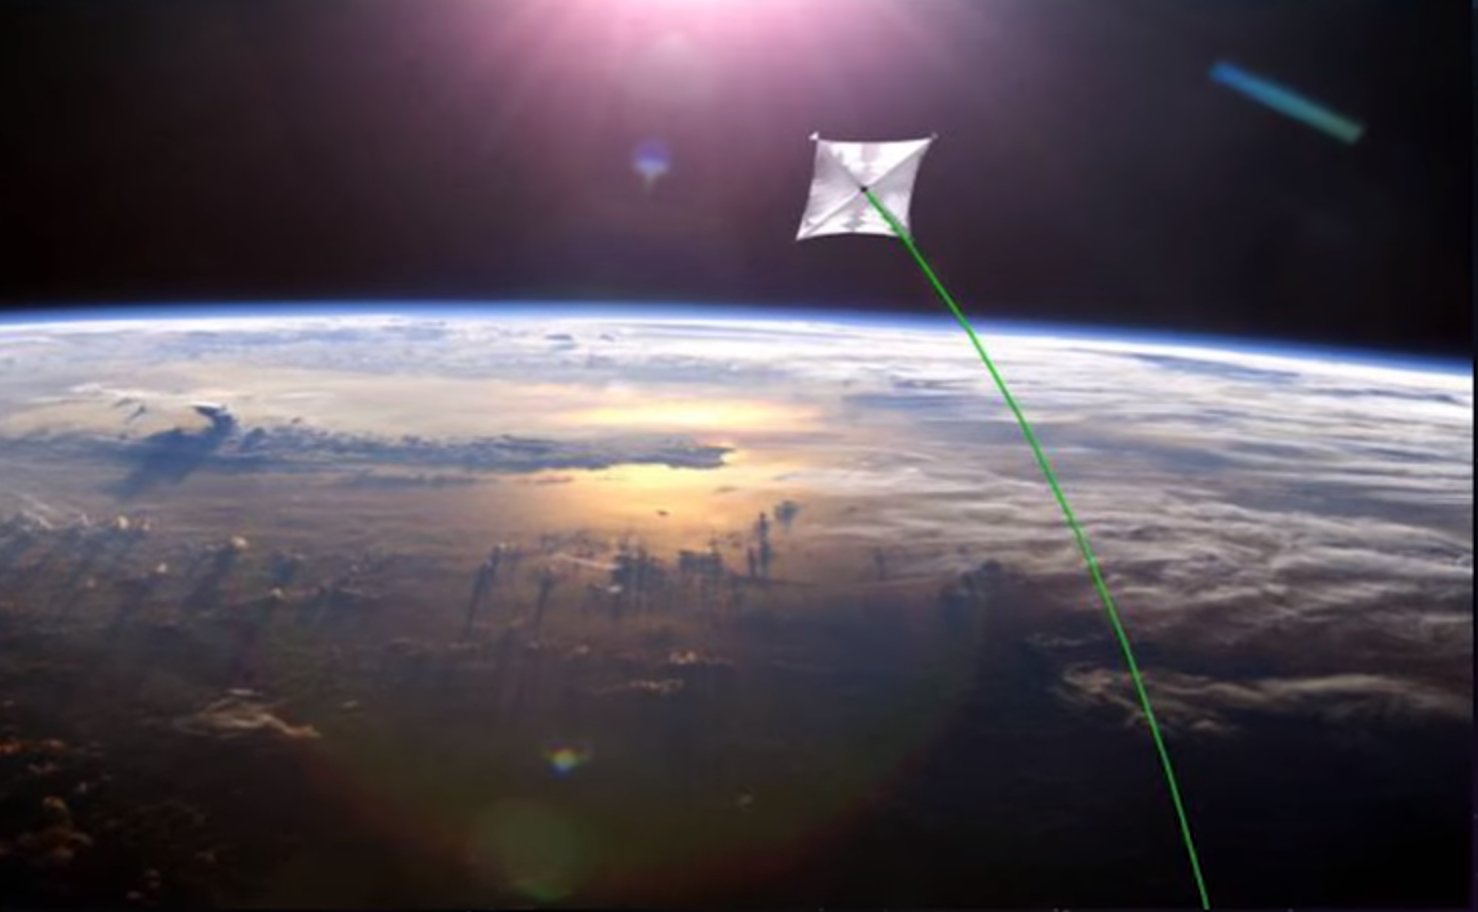 NASA researchers are working on a laser propulsion system that could get to Mars in 3 days